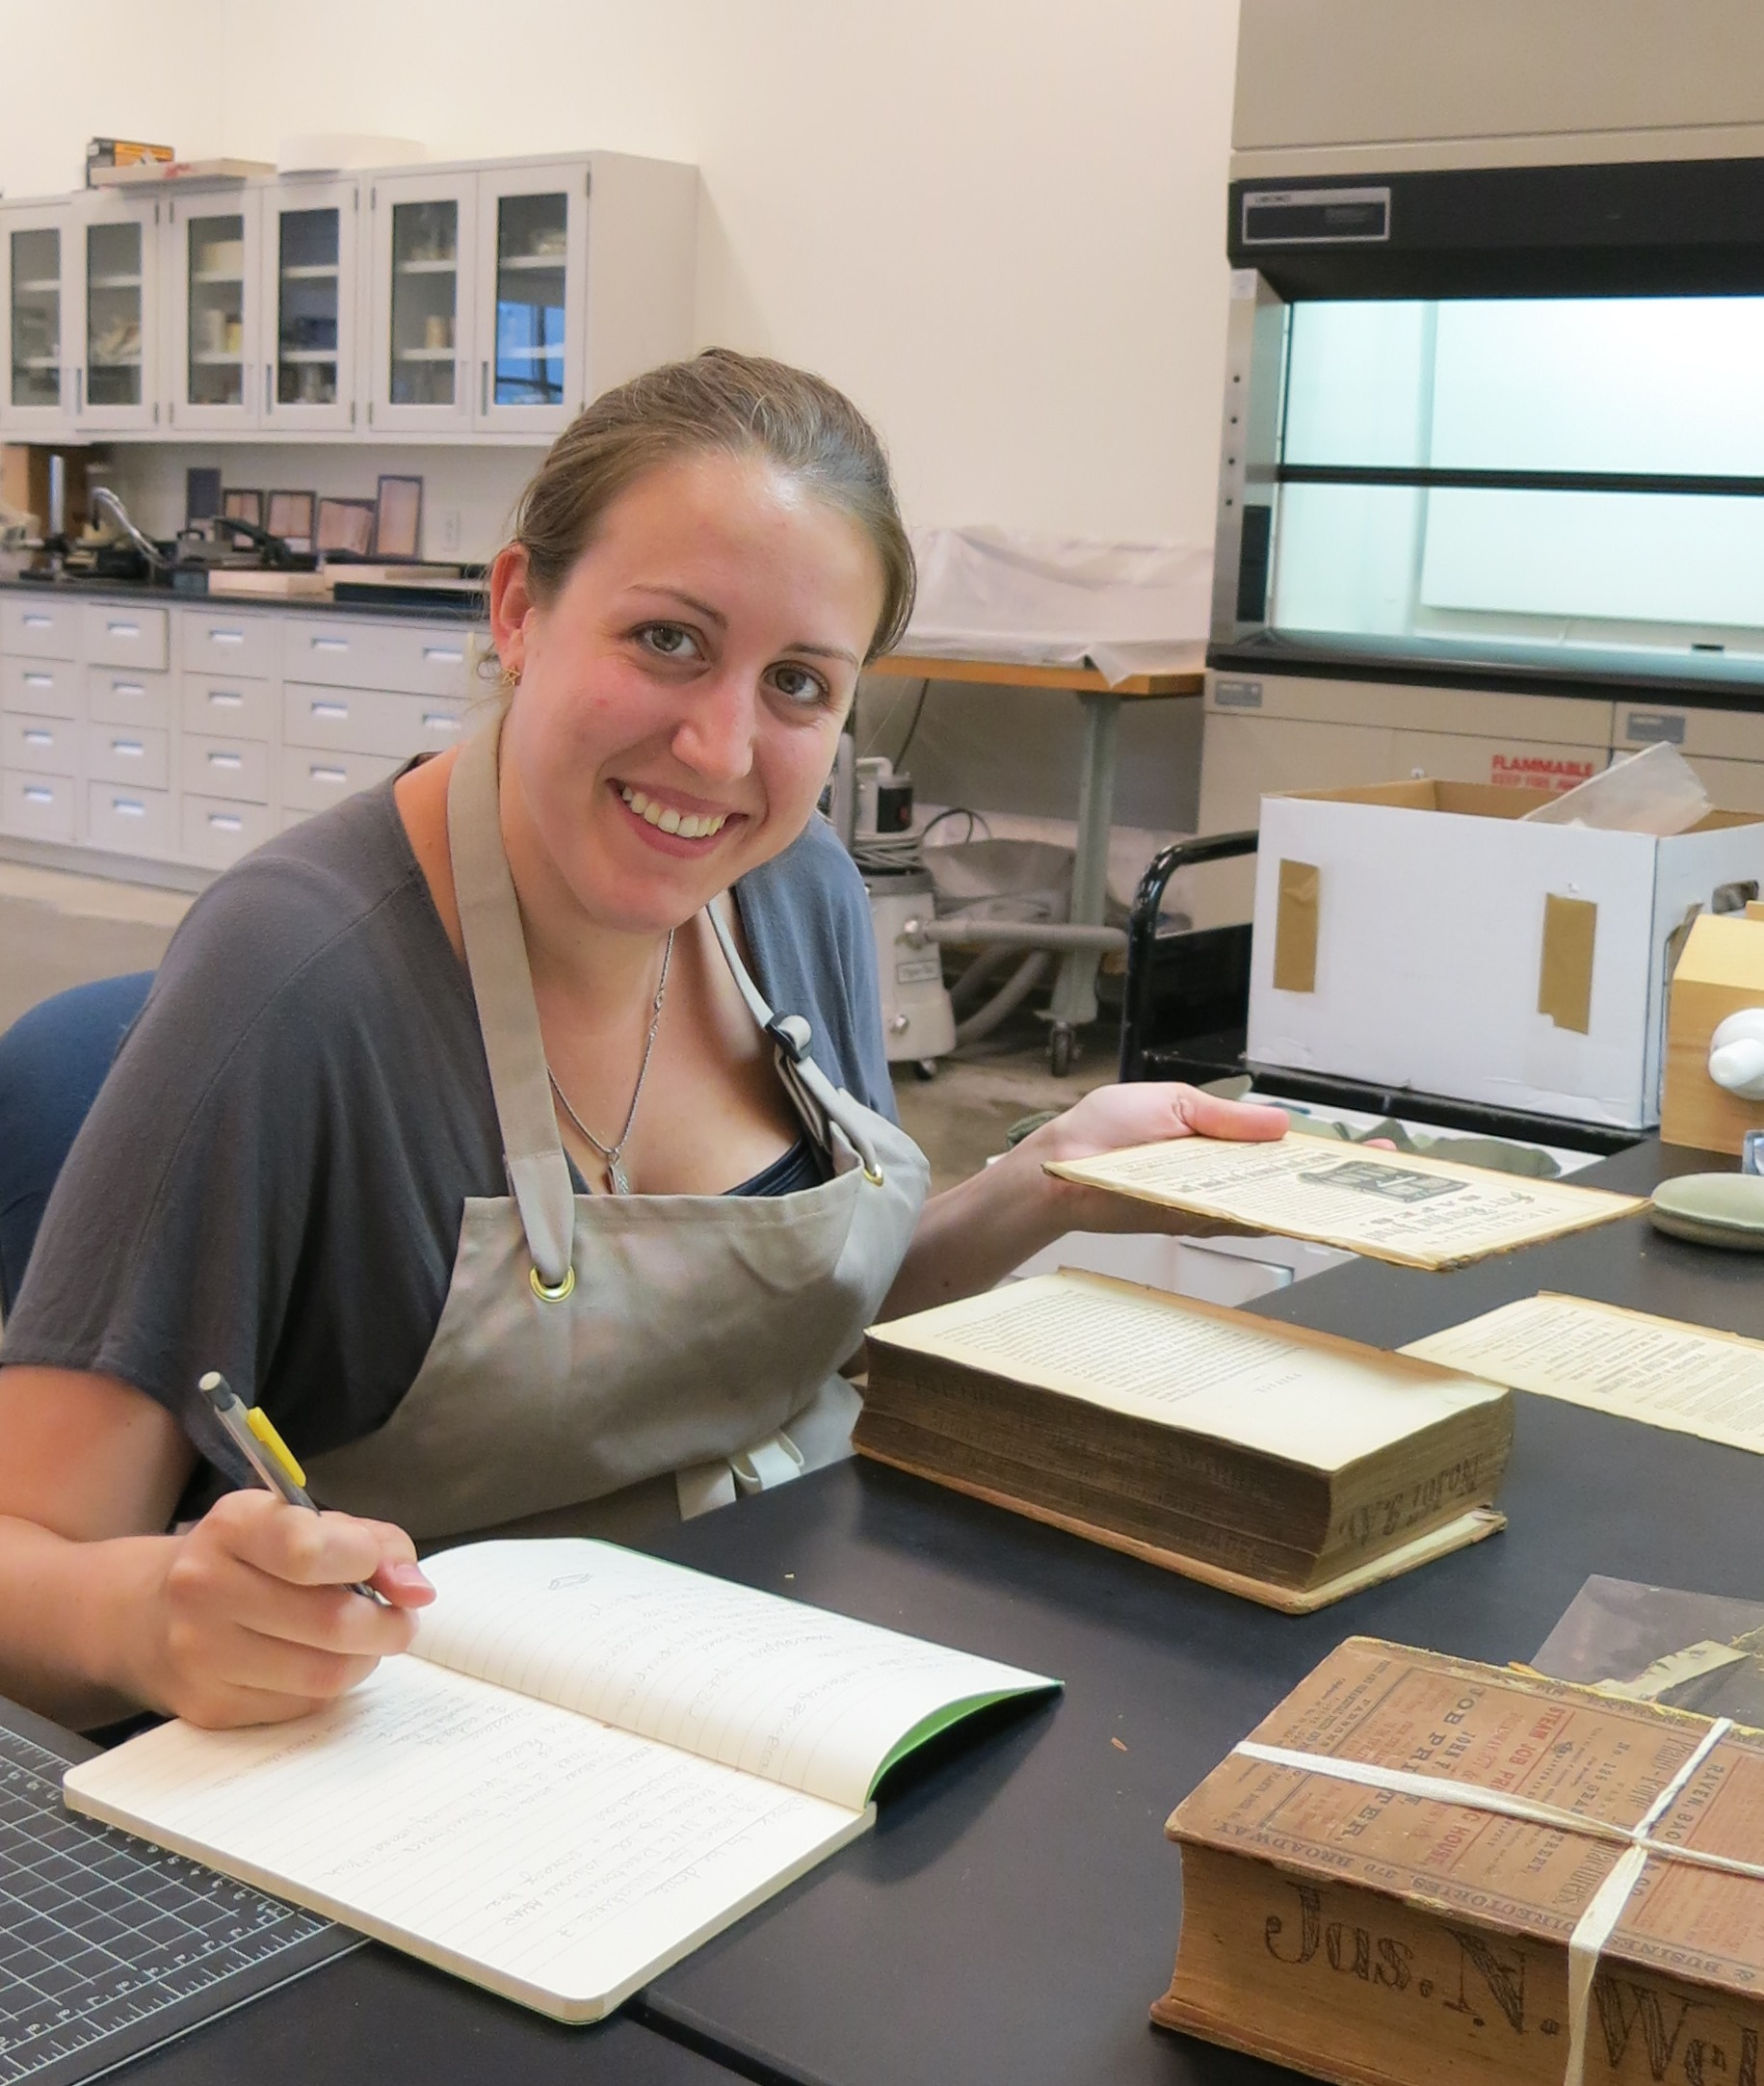 2015 Professional Development intern Katie Boodle at work in the Book Conservation Lab.